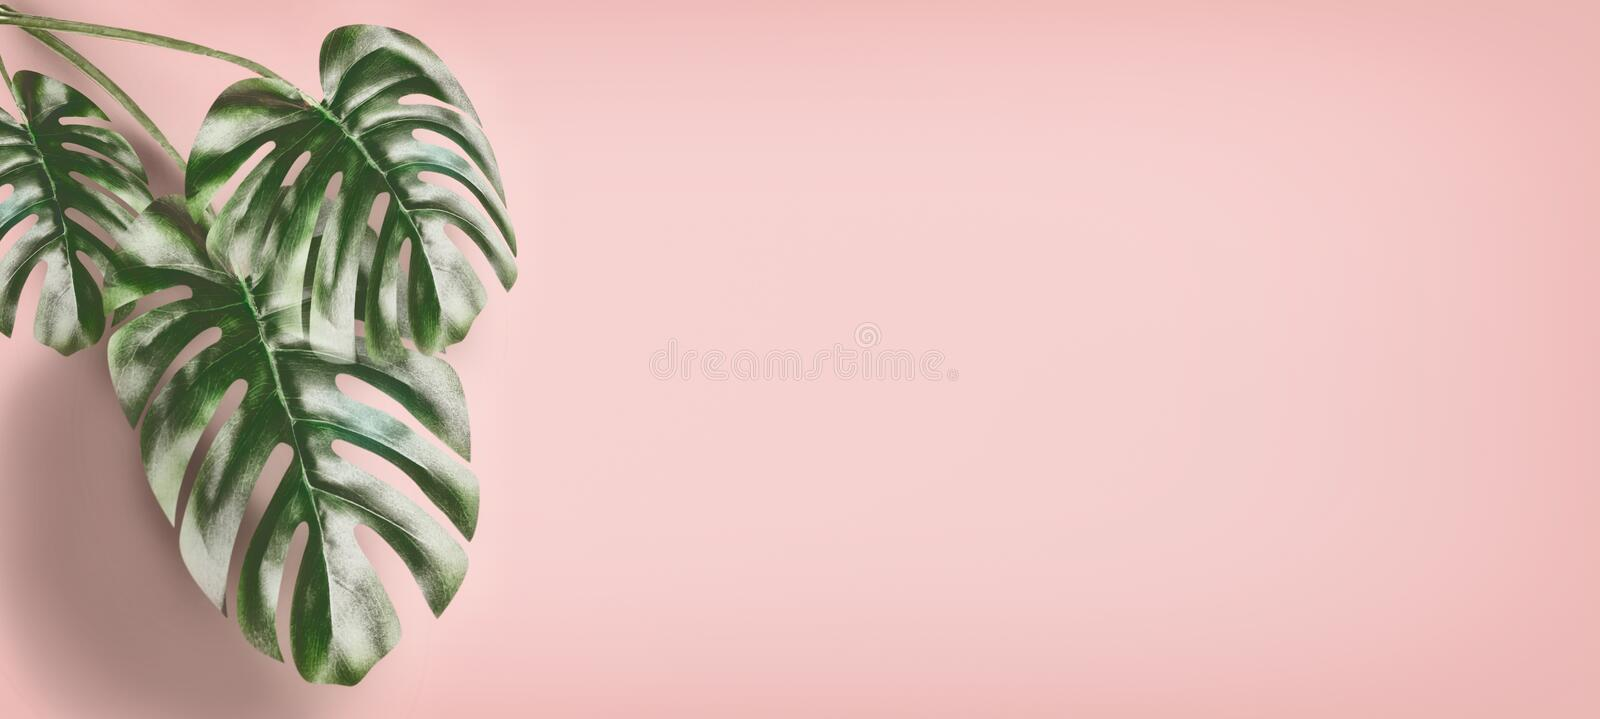 Tropical Monstera leaves at pastel pink background, summer background with copy space for design. Template or banner royalty free stock image